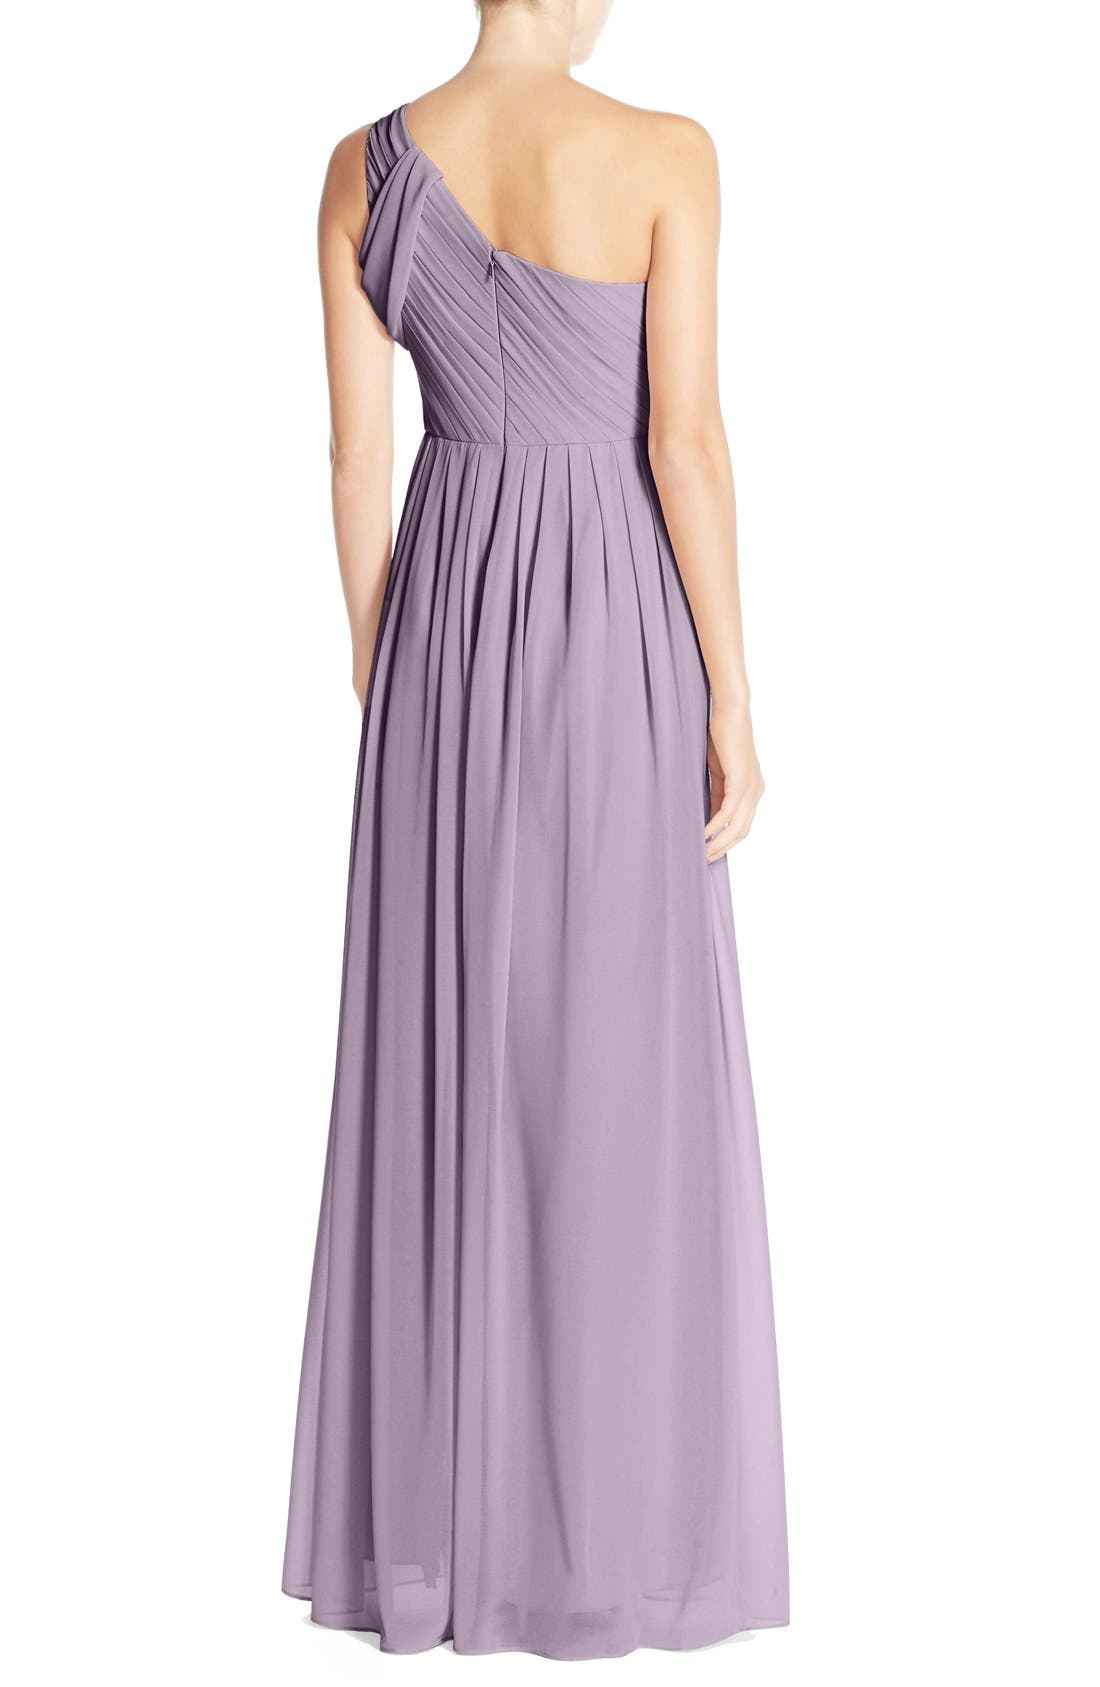 'Chloe' One-Shoulder Pleat Chiffon Gown,                             Alternate thumbnail 9, color,